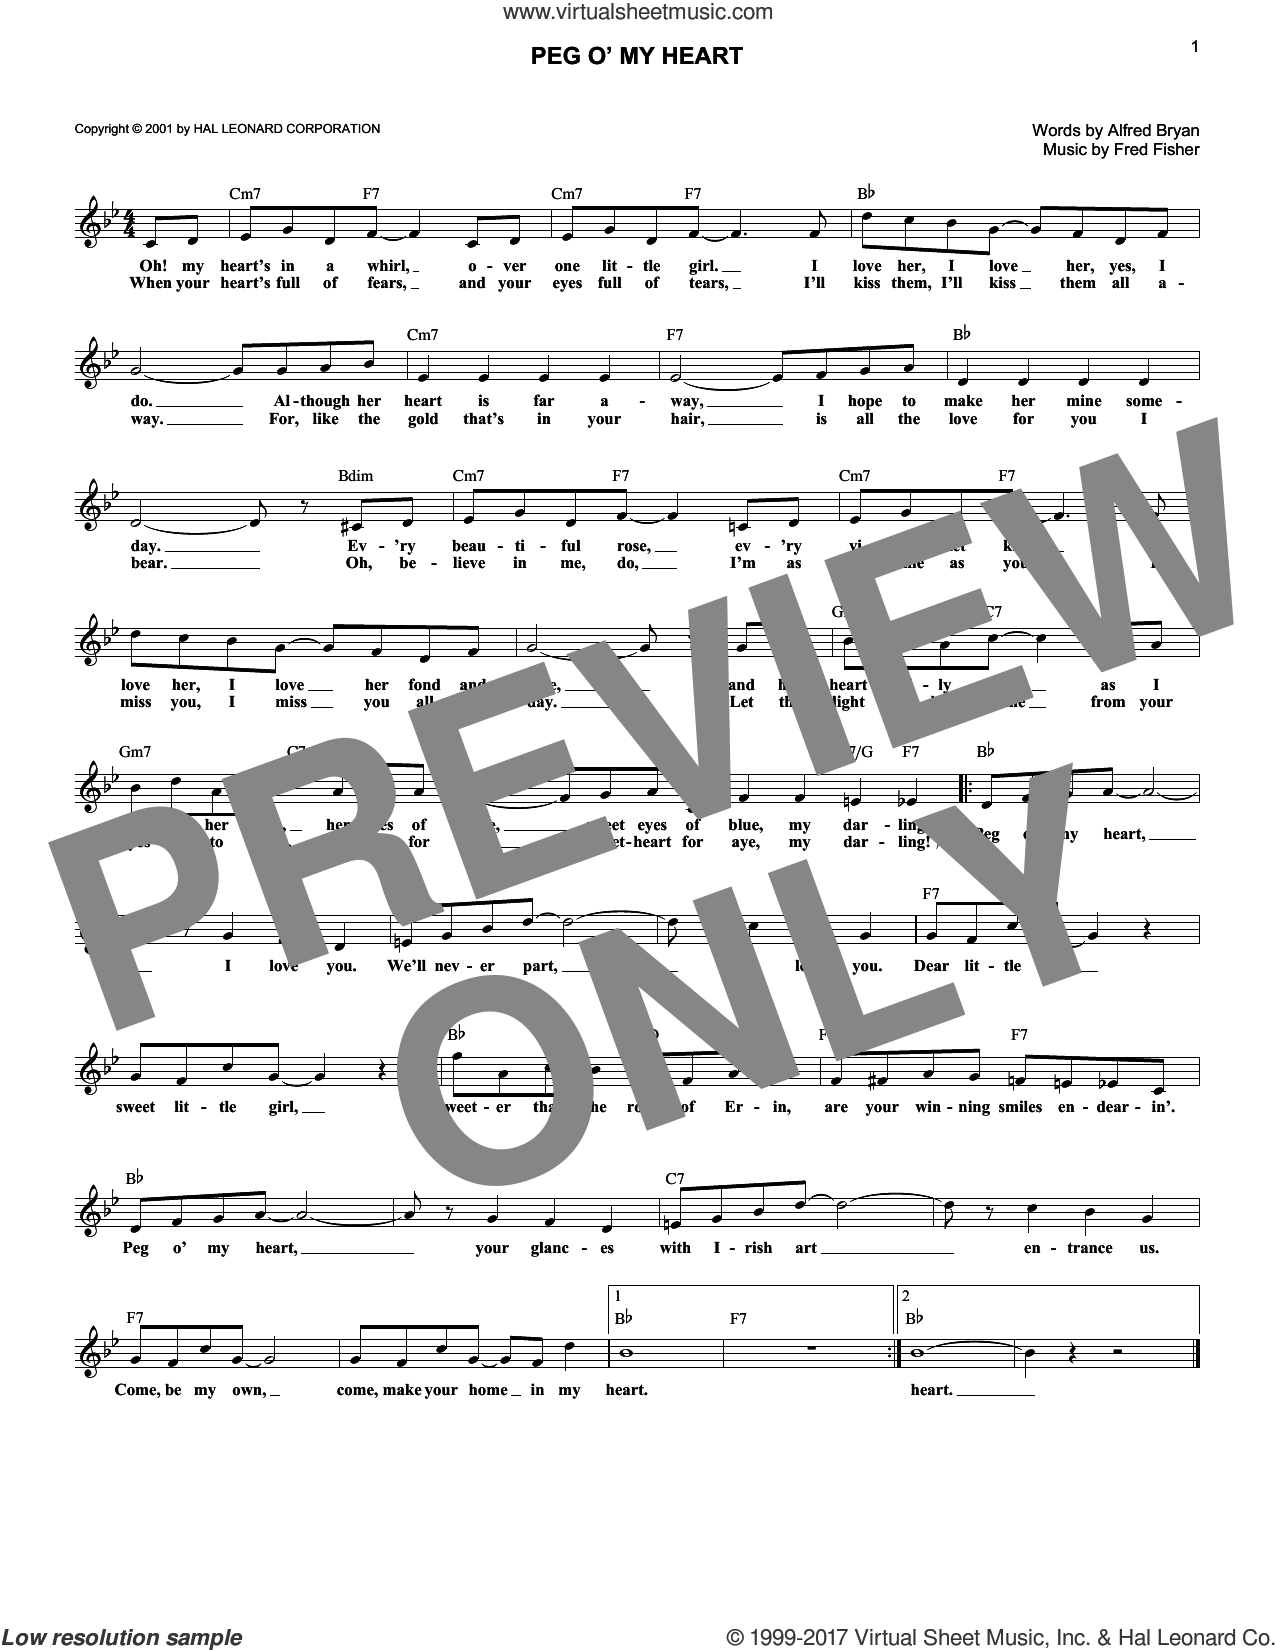 Peg O' My Heart sheet music for voice and other instruments (fake book) by Alfred Bryan and Fred Fisher, intermediate skill level